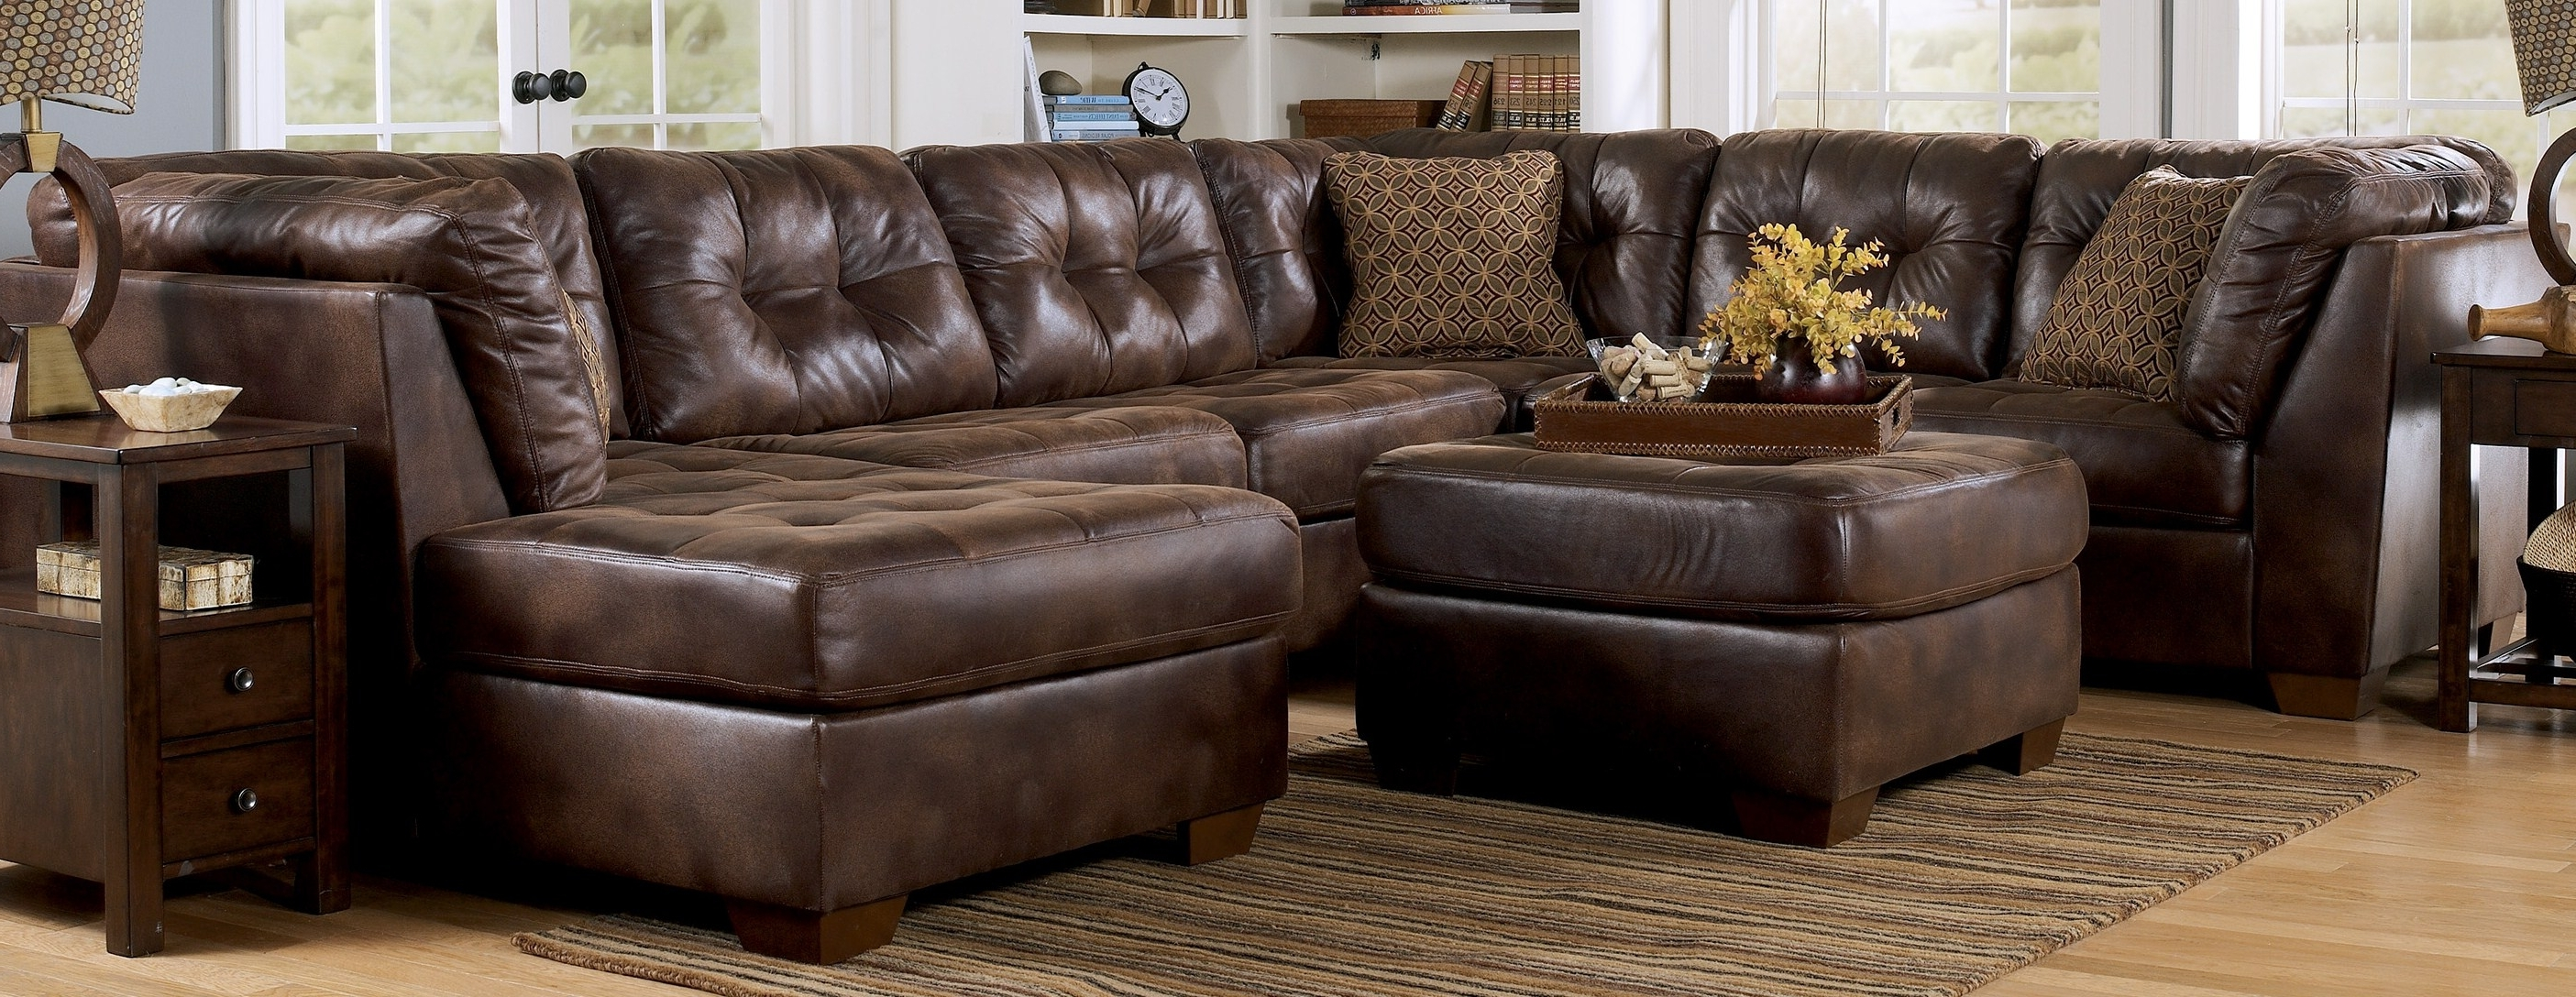 Newest Leather Sectionals With Chaise And Ottoman For Big Lots Recliners Ashley Furniture Sectional Sofas Cheap (View 8 of 20)